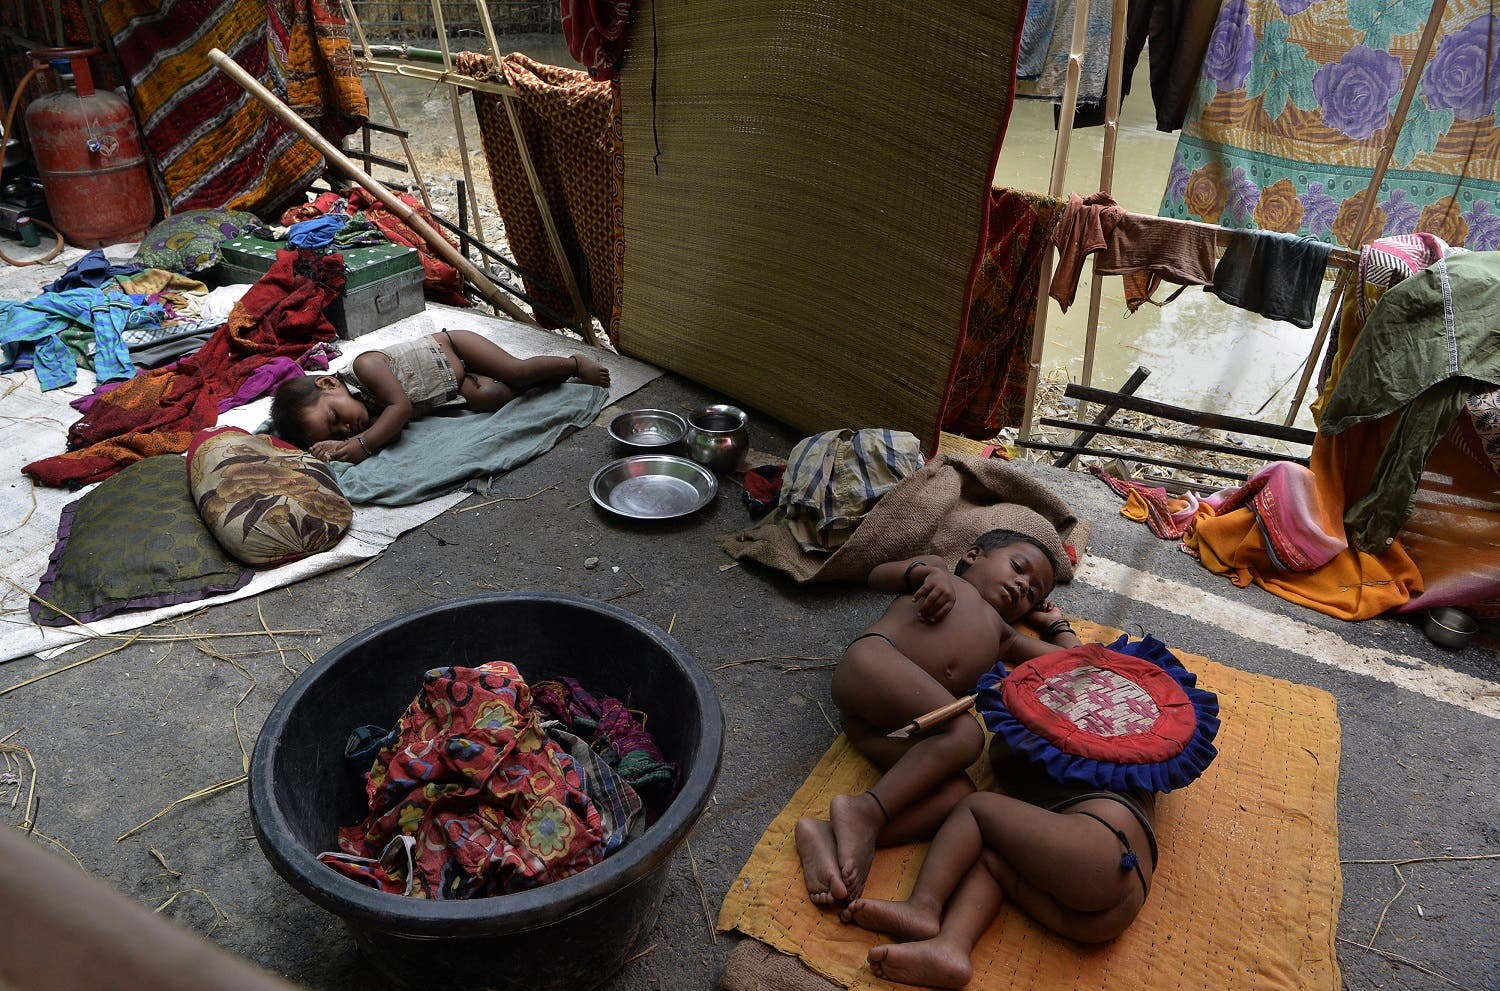 Indian children rest in a makeshift shelter at flood-affected Palsa village in Purnia district in Bihar state on August 18, 2017. At least 221 people have died and more than 1.5 million have been displaced by monsoon flooding across India, Nepal and Bangladesh, officials said August 15, as rescuers scoured submerged villages for the missing. (AFP)